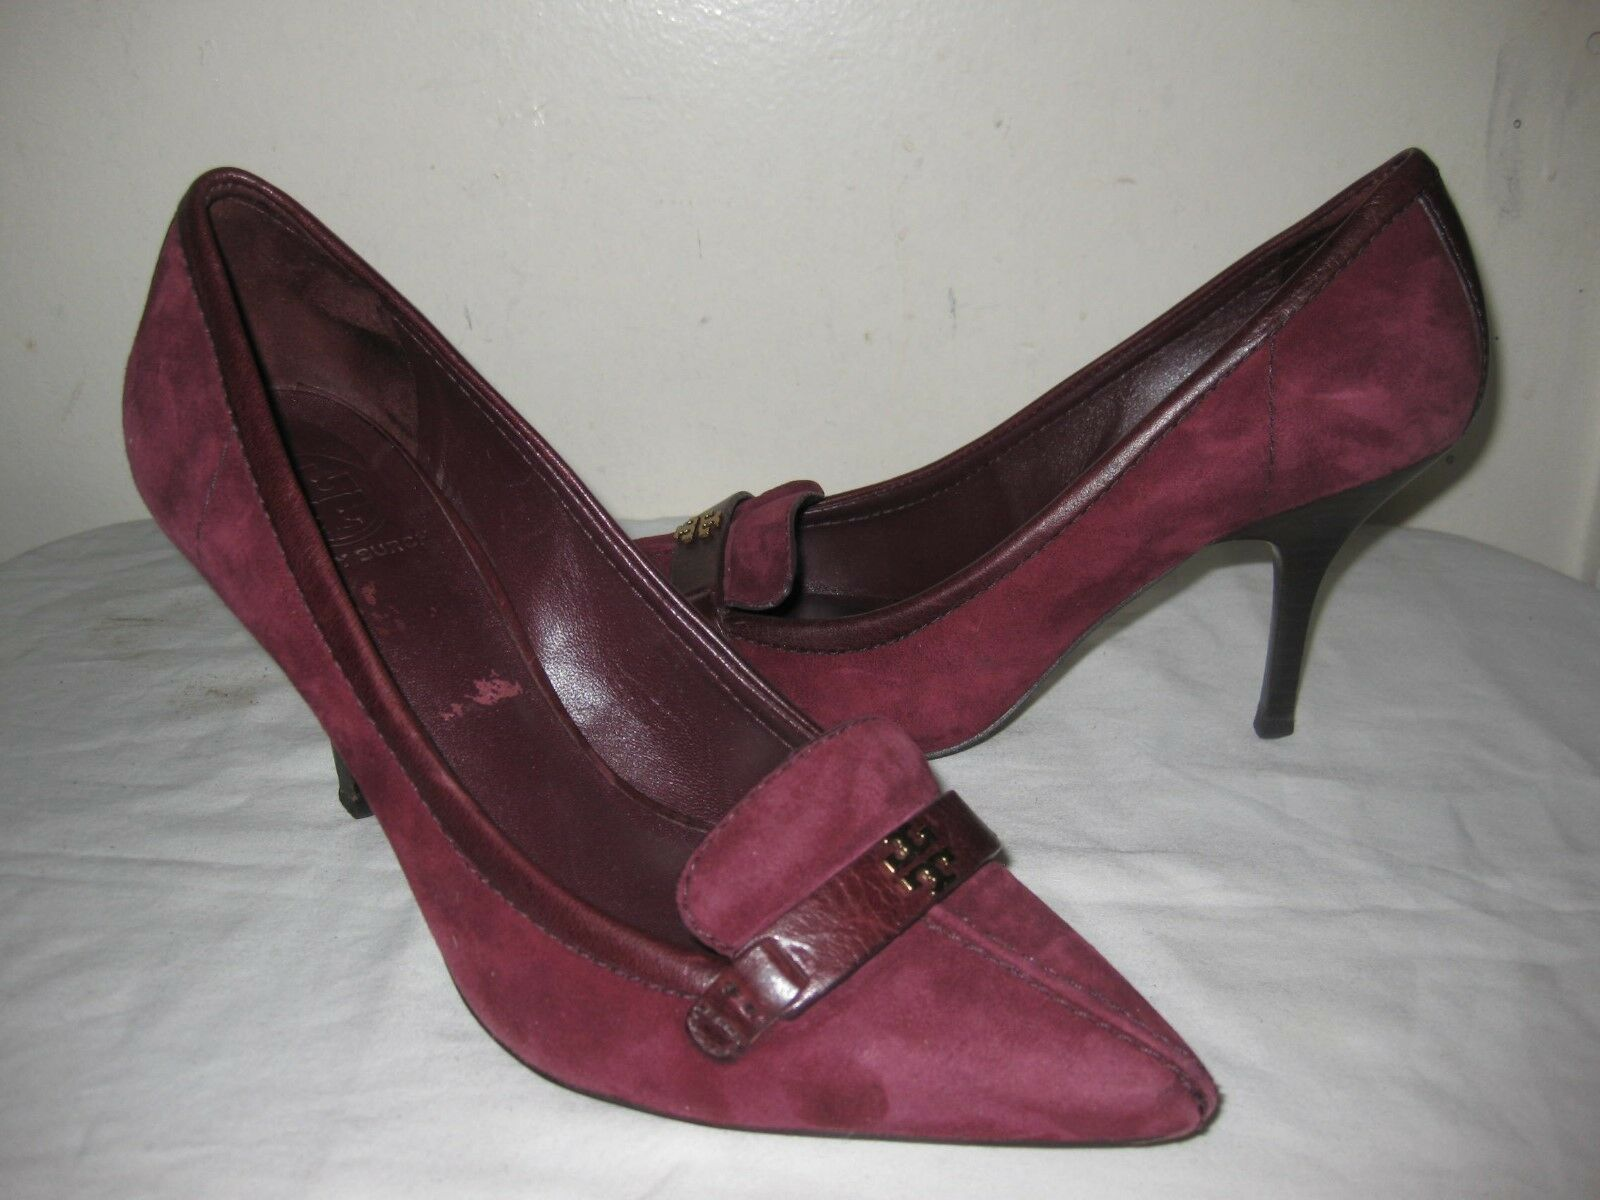 TORY BURCH All Leather Burgundy Pointy Toe Kitten Heel Shoes Shoes Heel Size 8.5 M e450ed